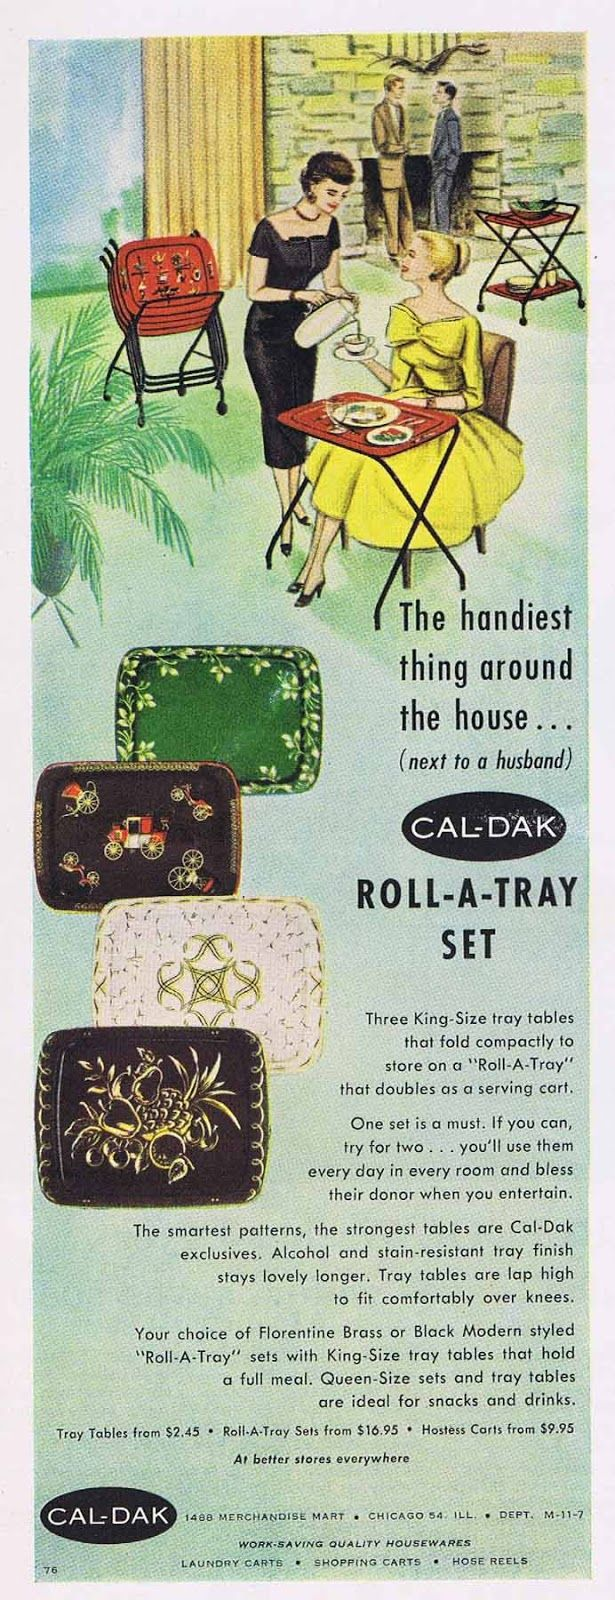 """A 1957  ad for TV tray sets in a variety of styles and colors. These Cal-Dark Roll-a-Tray TV tray table sets are, according to the ad, """"The handiest thing around the house...(next to a husband)""""    I'm sure there are many women who would disagree with that one.  TV trays were very common back in the 1950s and continue to be today. I had a number of friends who grew up eating dinner at the dinner table only when they had company. Otherwise, they ate at the TV."""